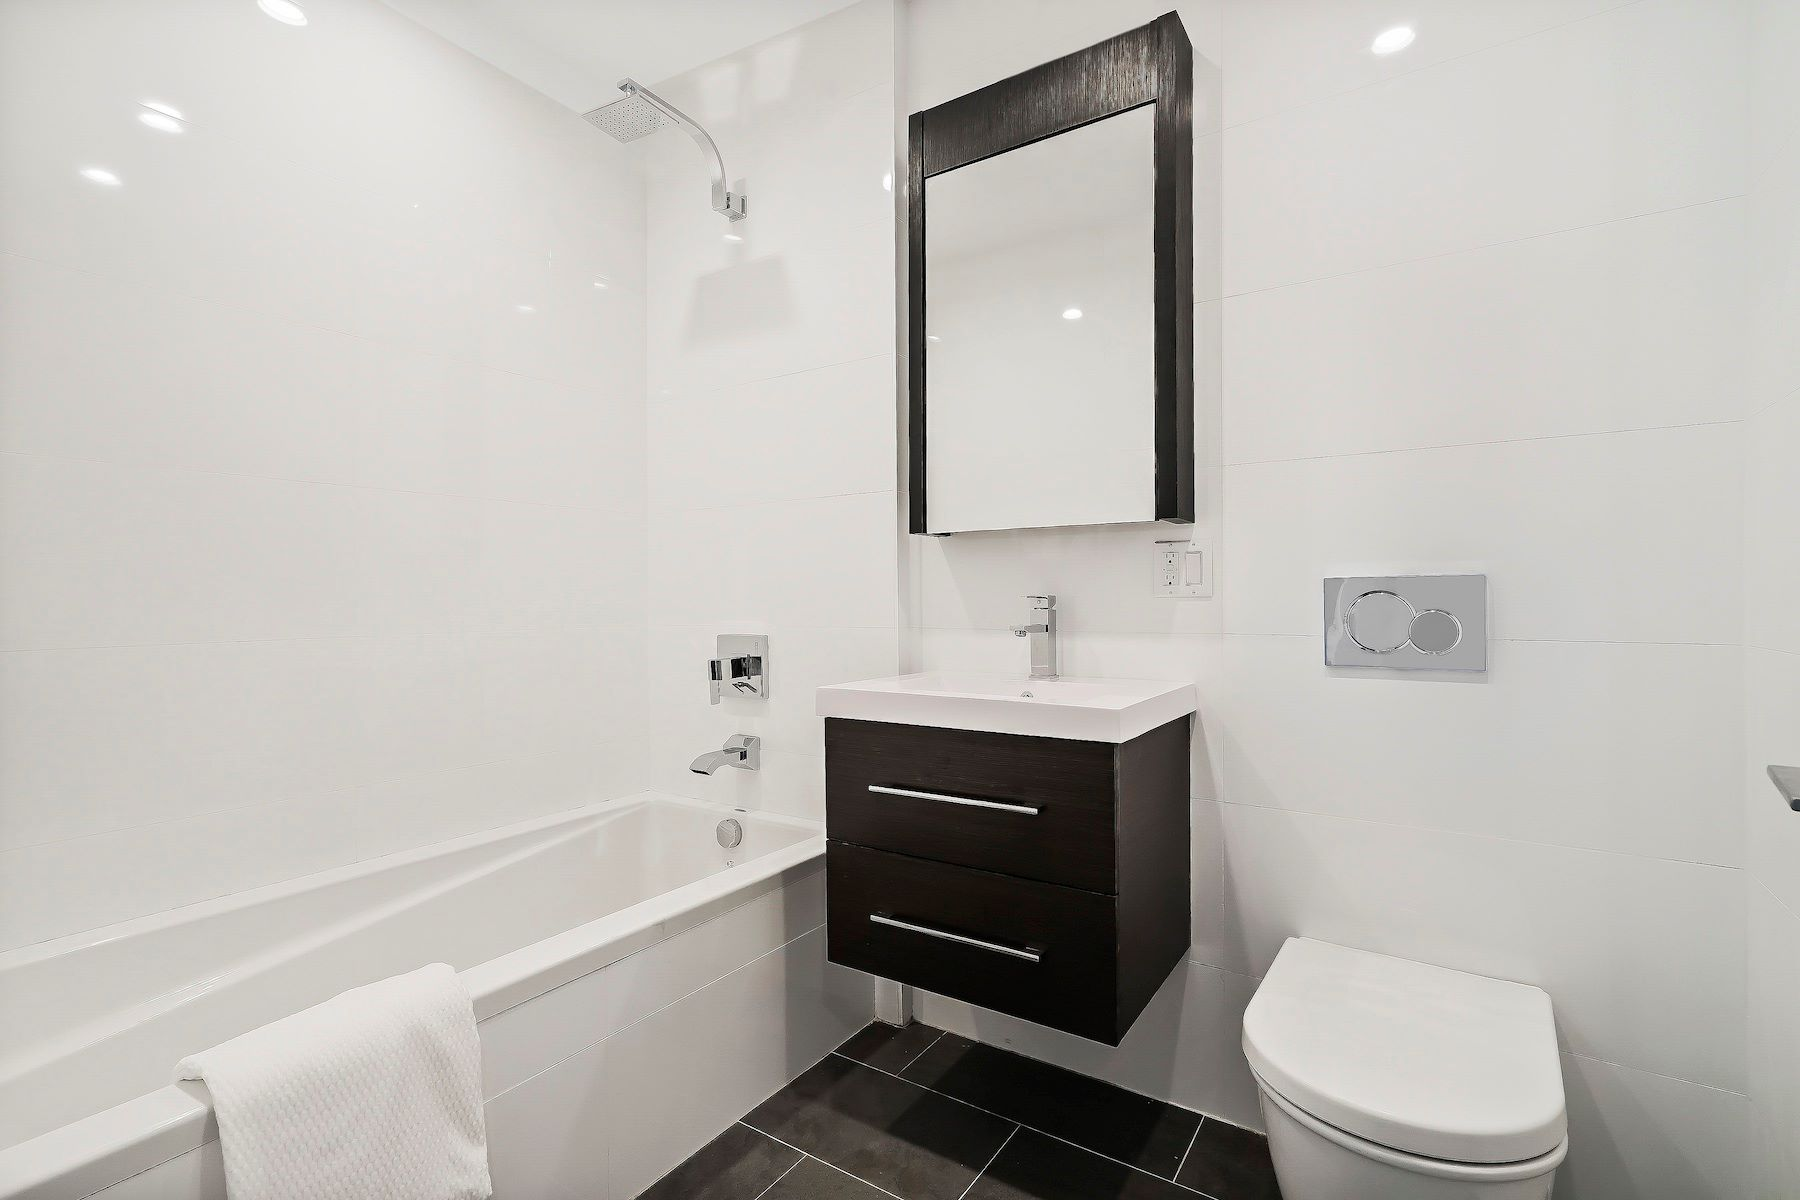 Additional photo for property listing at Stanton on Sixth 695 6th Avenue, 2A Brooklyn, New York 11215 United States